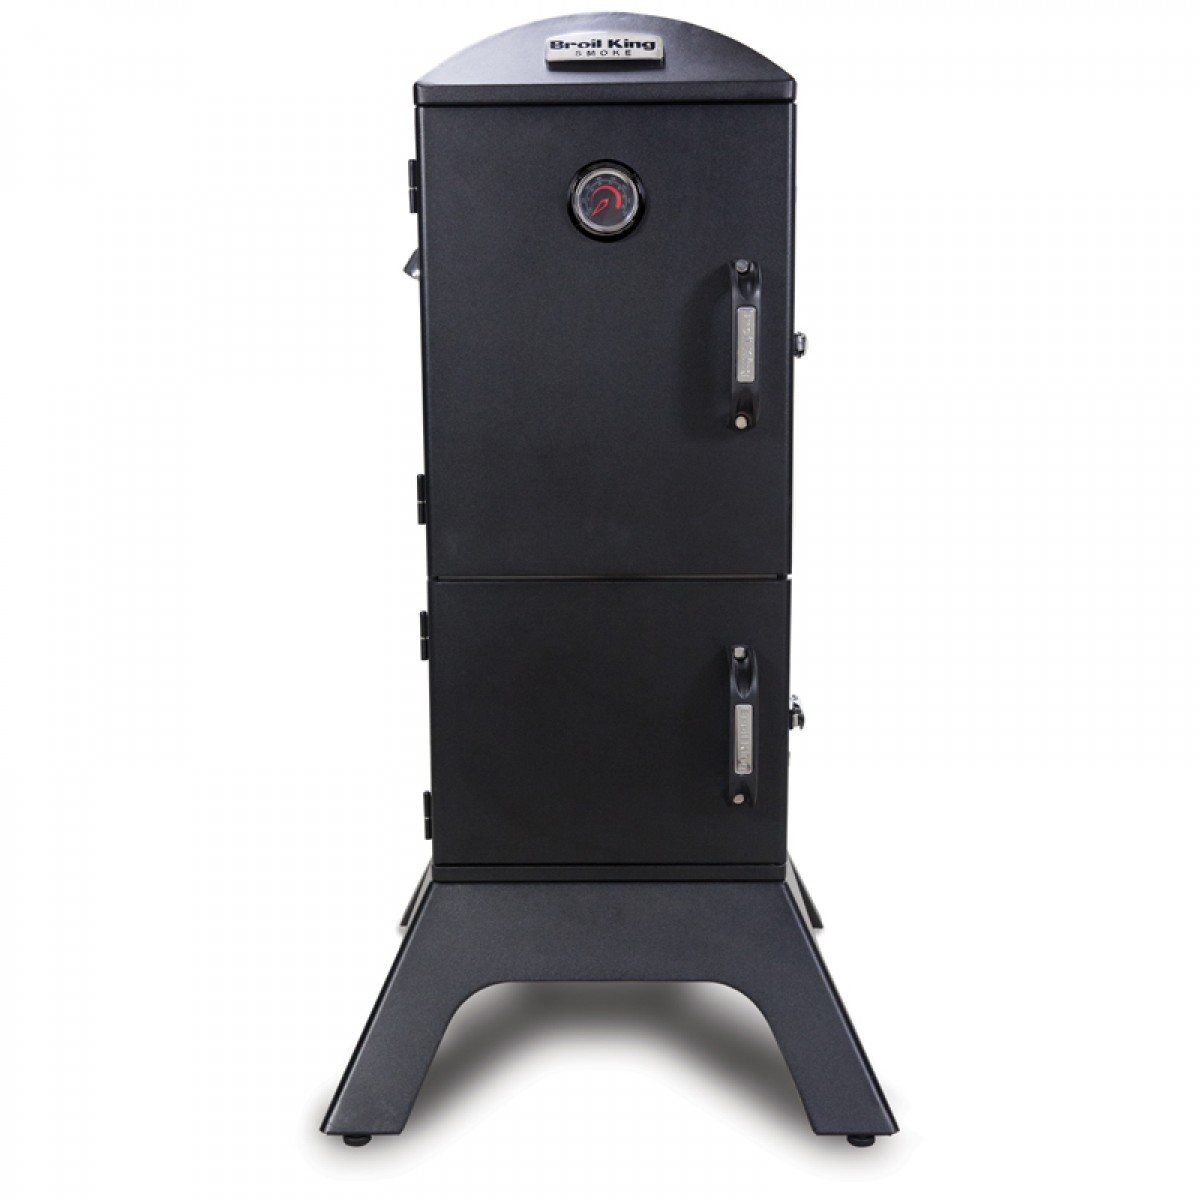 Broil King Vertical Charcoal Smoker at iBuyBarbecues.com